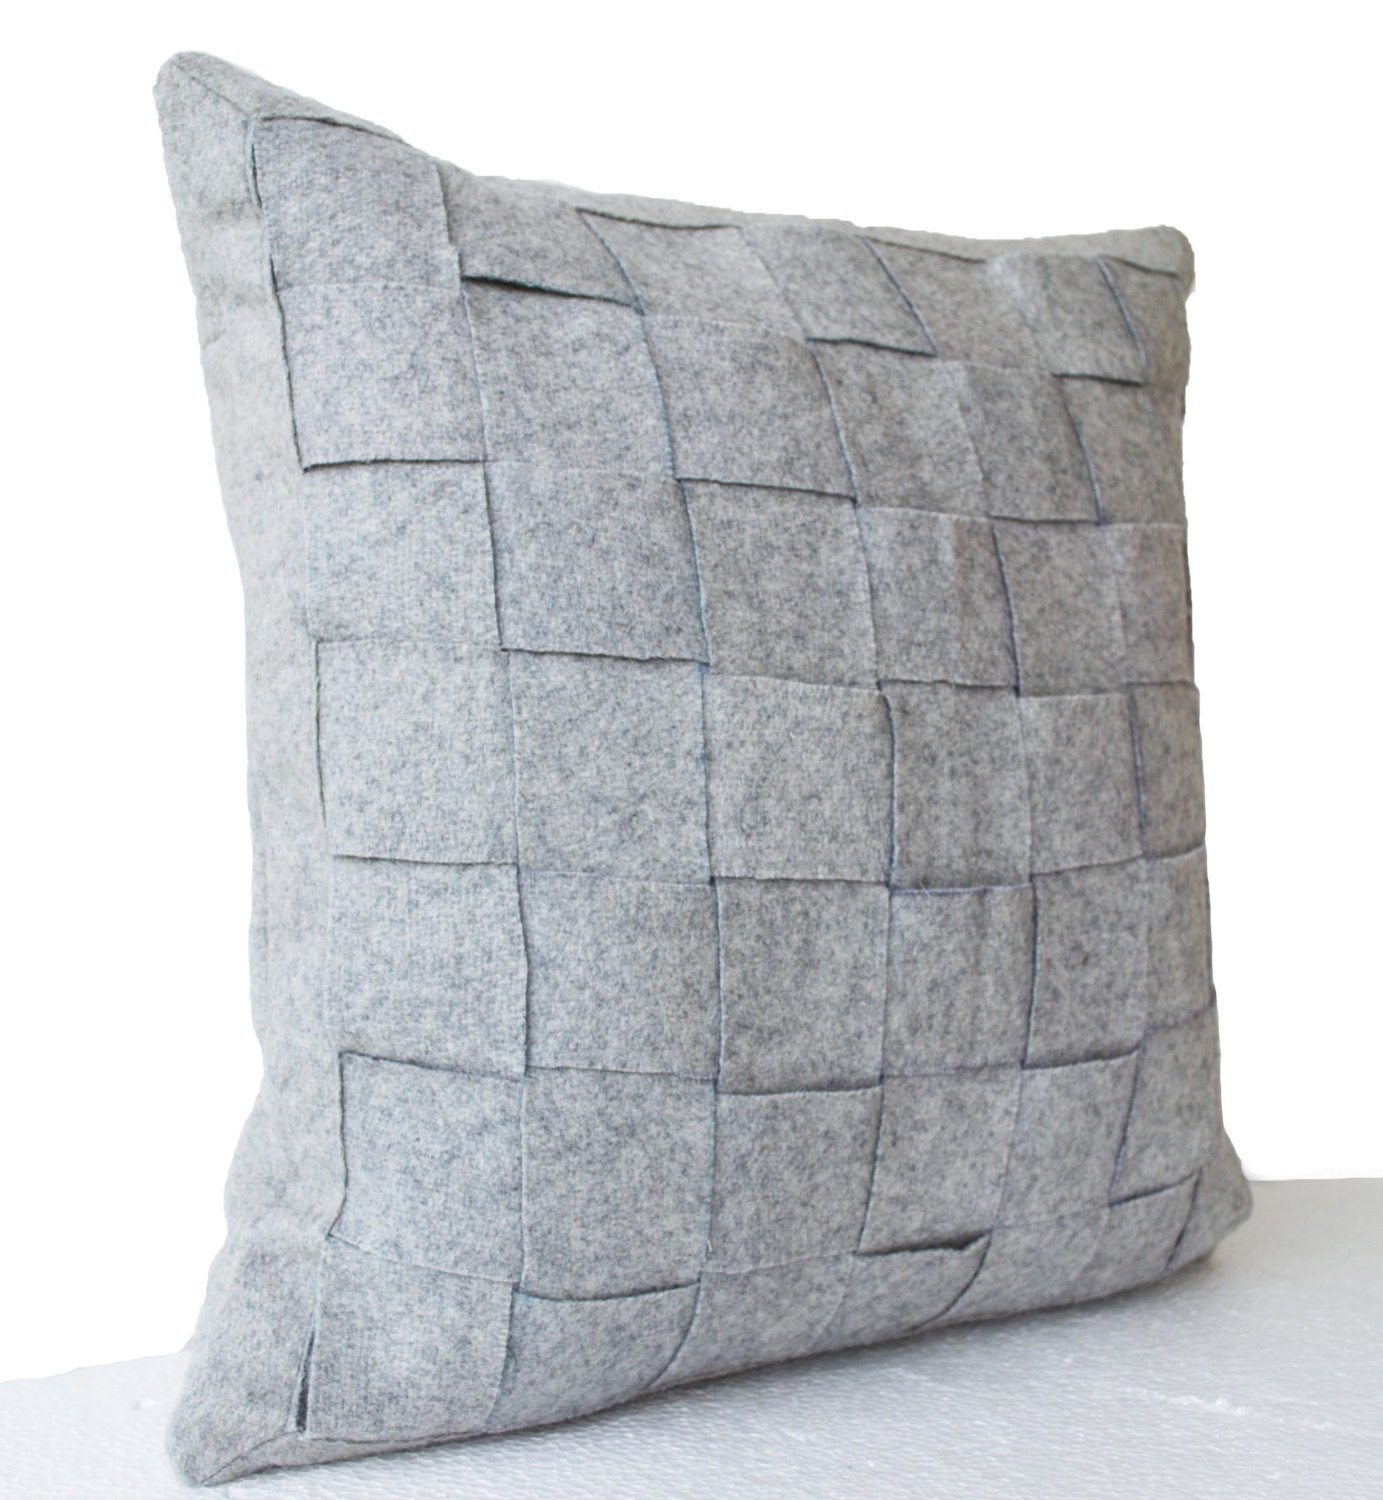 Gray felt pillowcases felt weave throw pillow decorative for Decor pillows